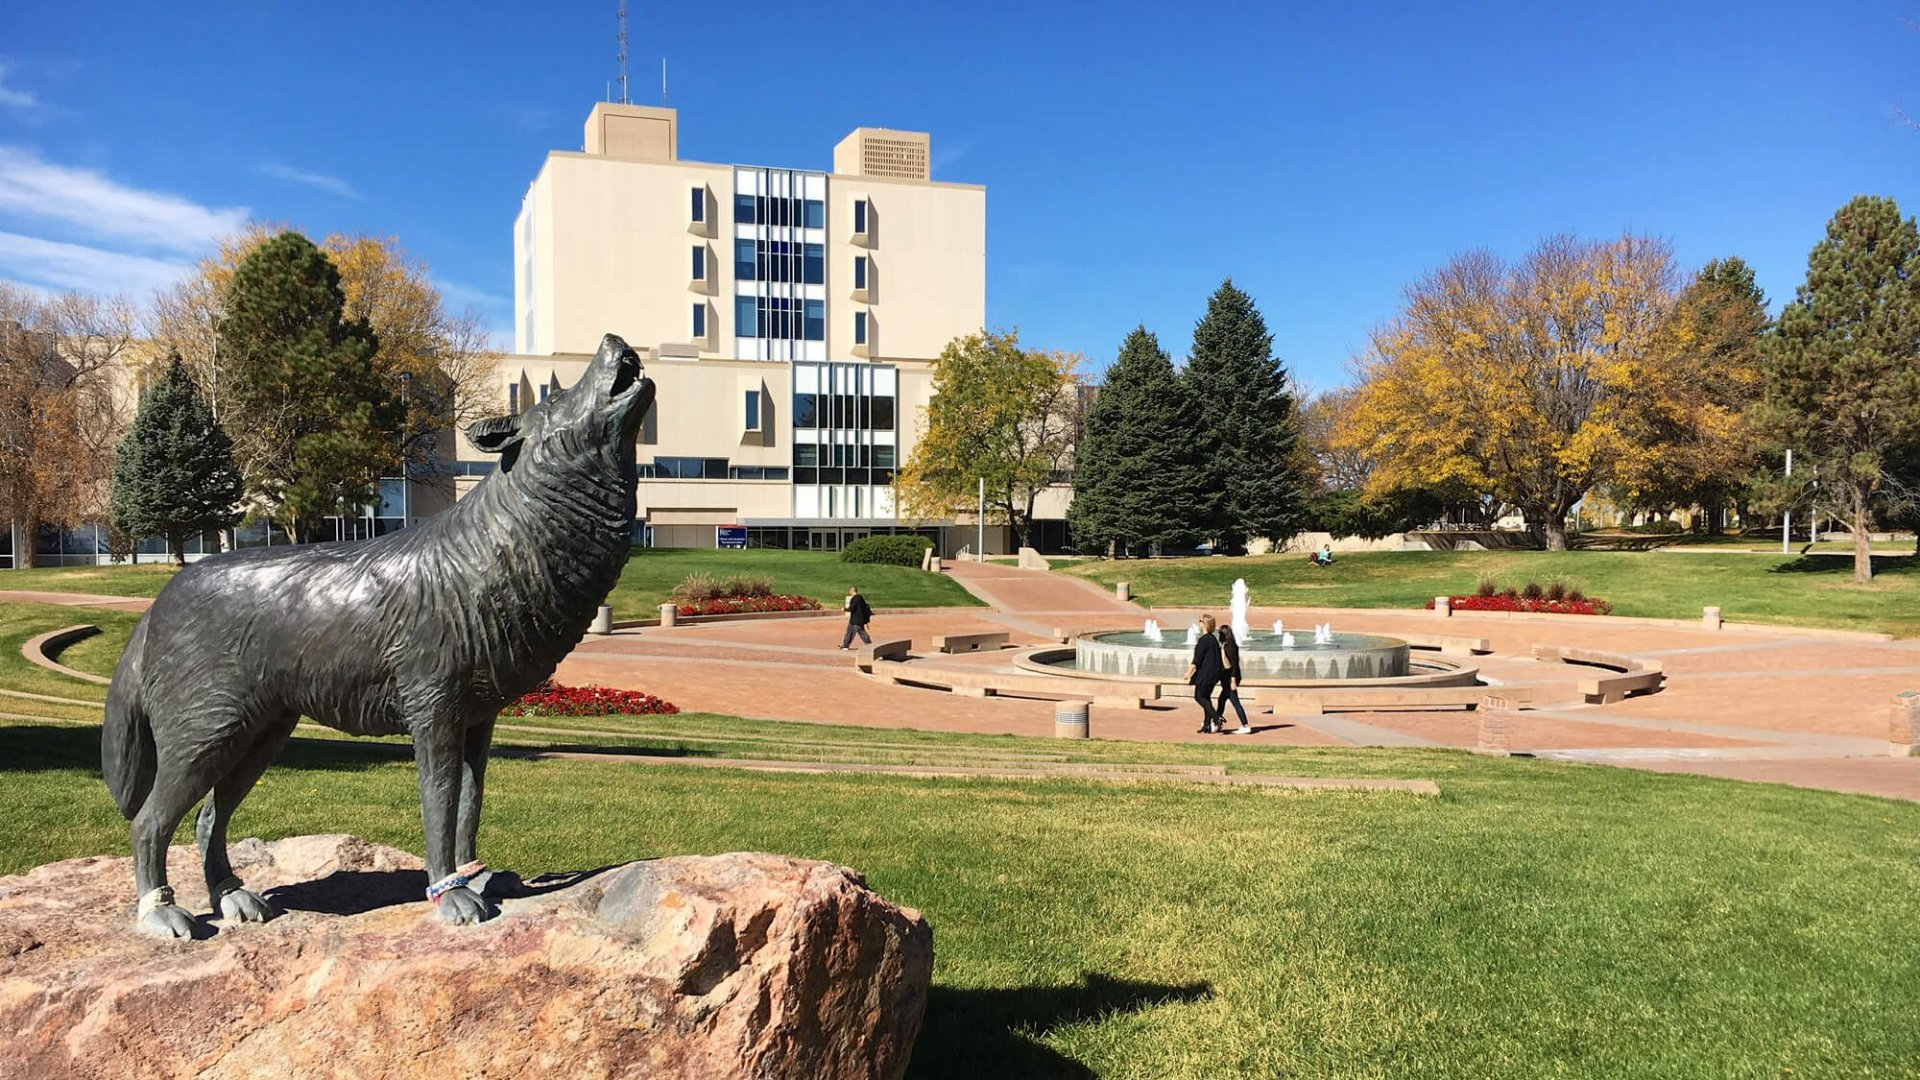 Colorado State University, Pueblo, CO with students walking in the background